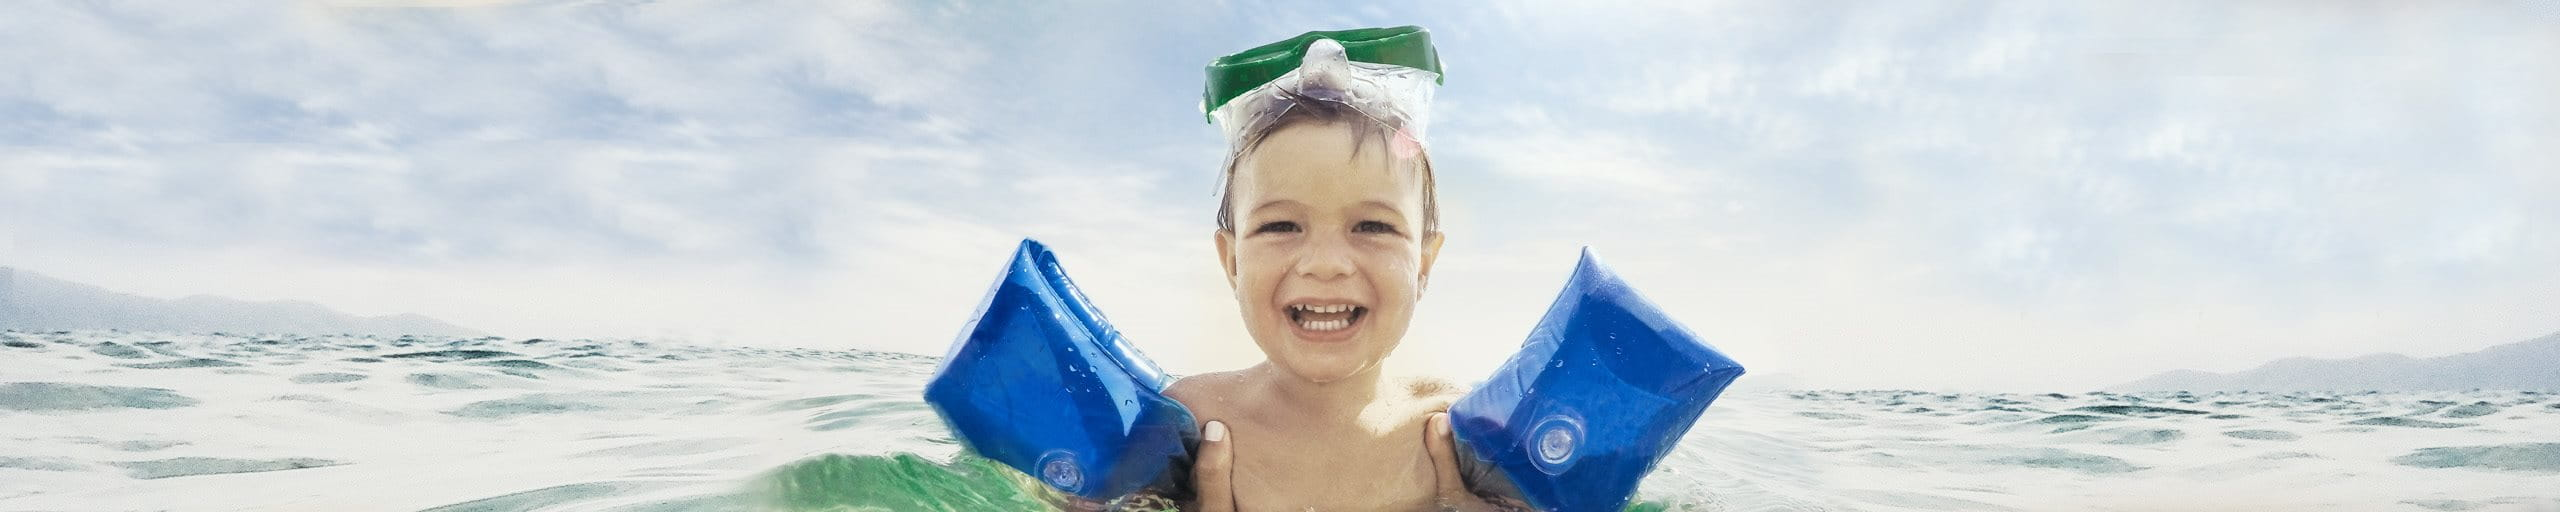 A boy wearing water wings splashes about in the water.